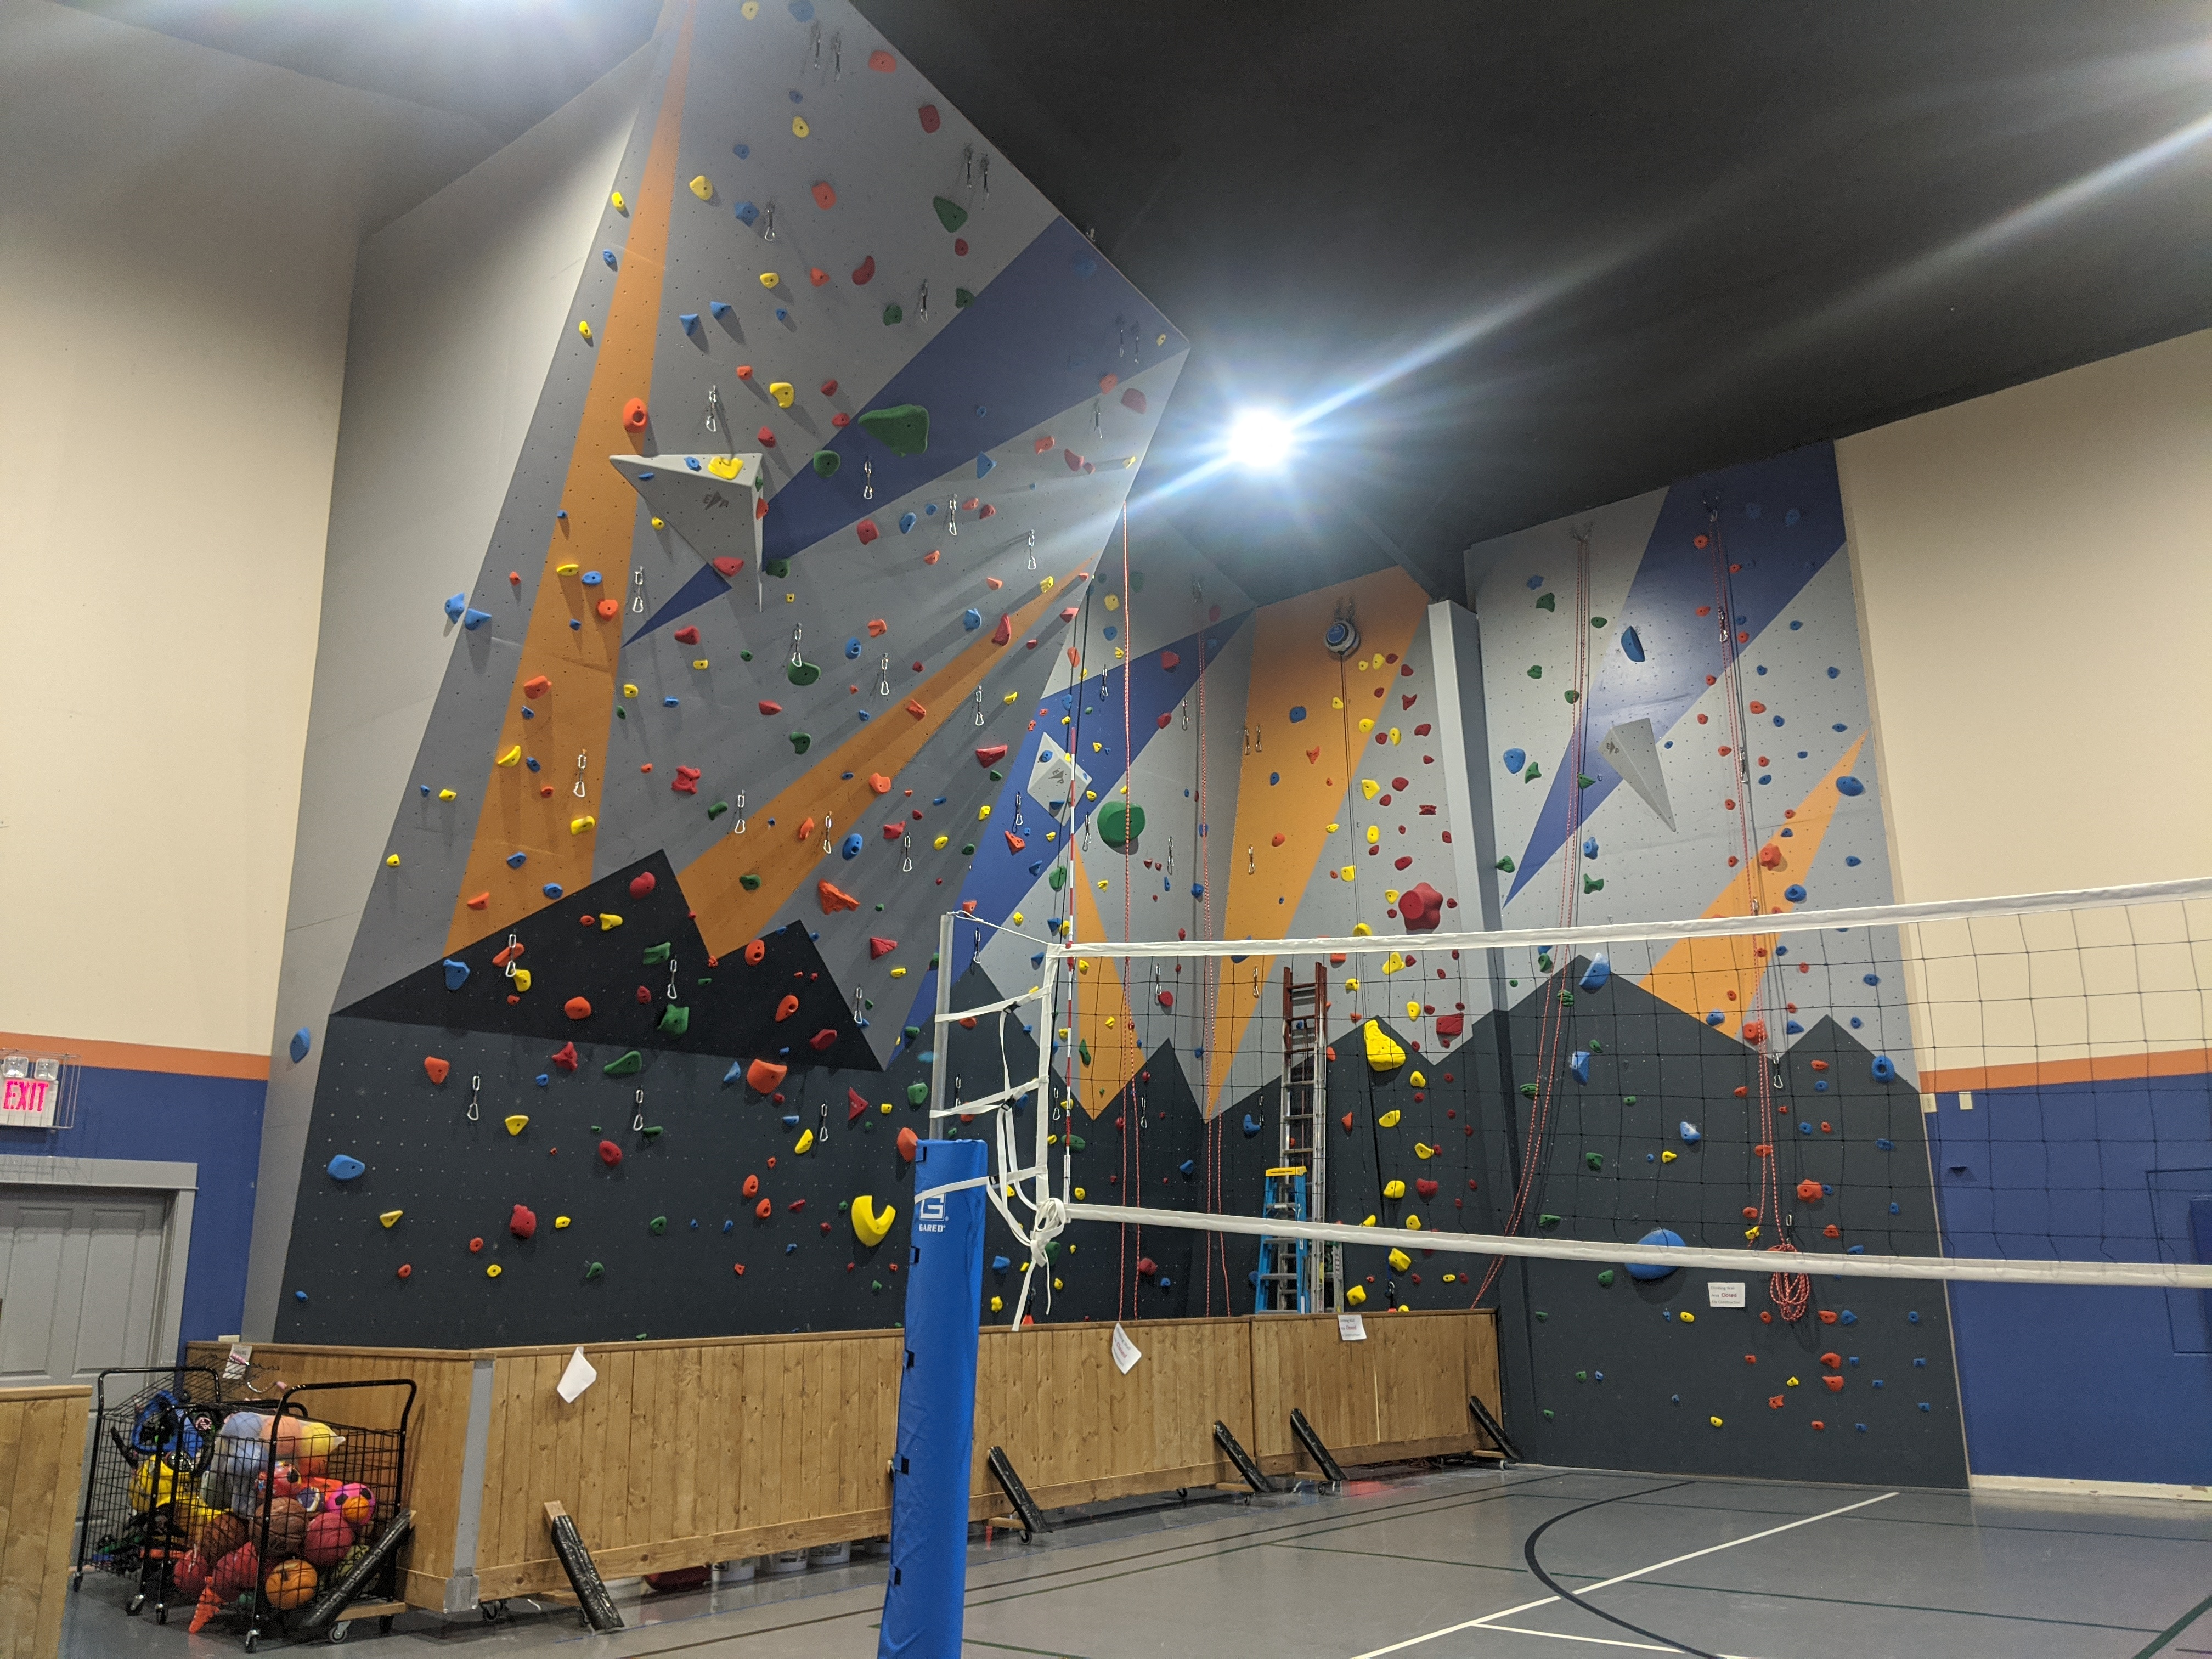 Our New Climbing Wall Feb 2020